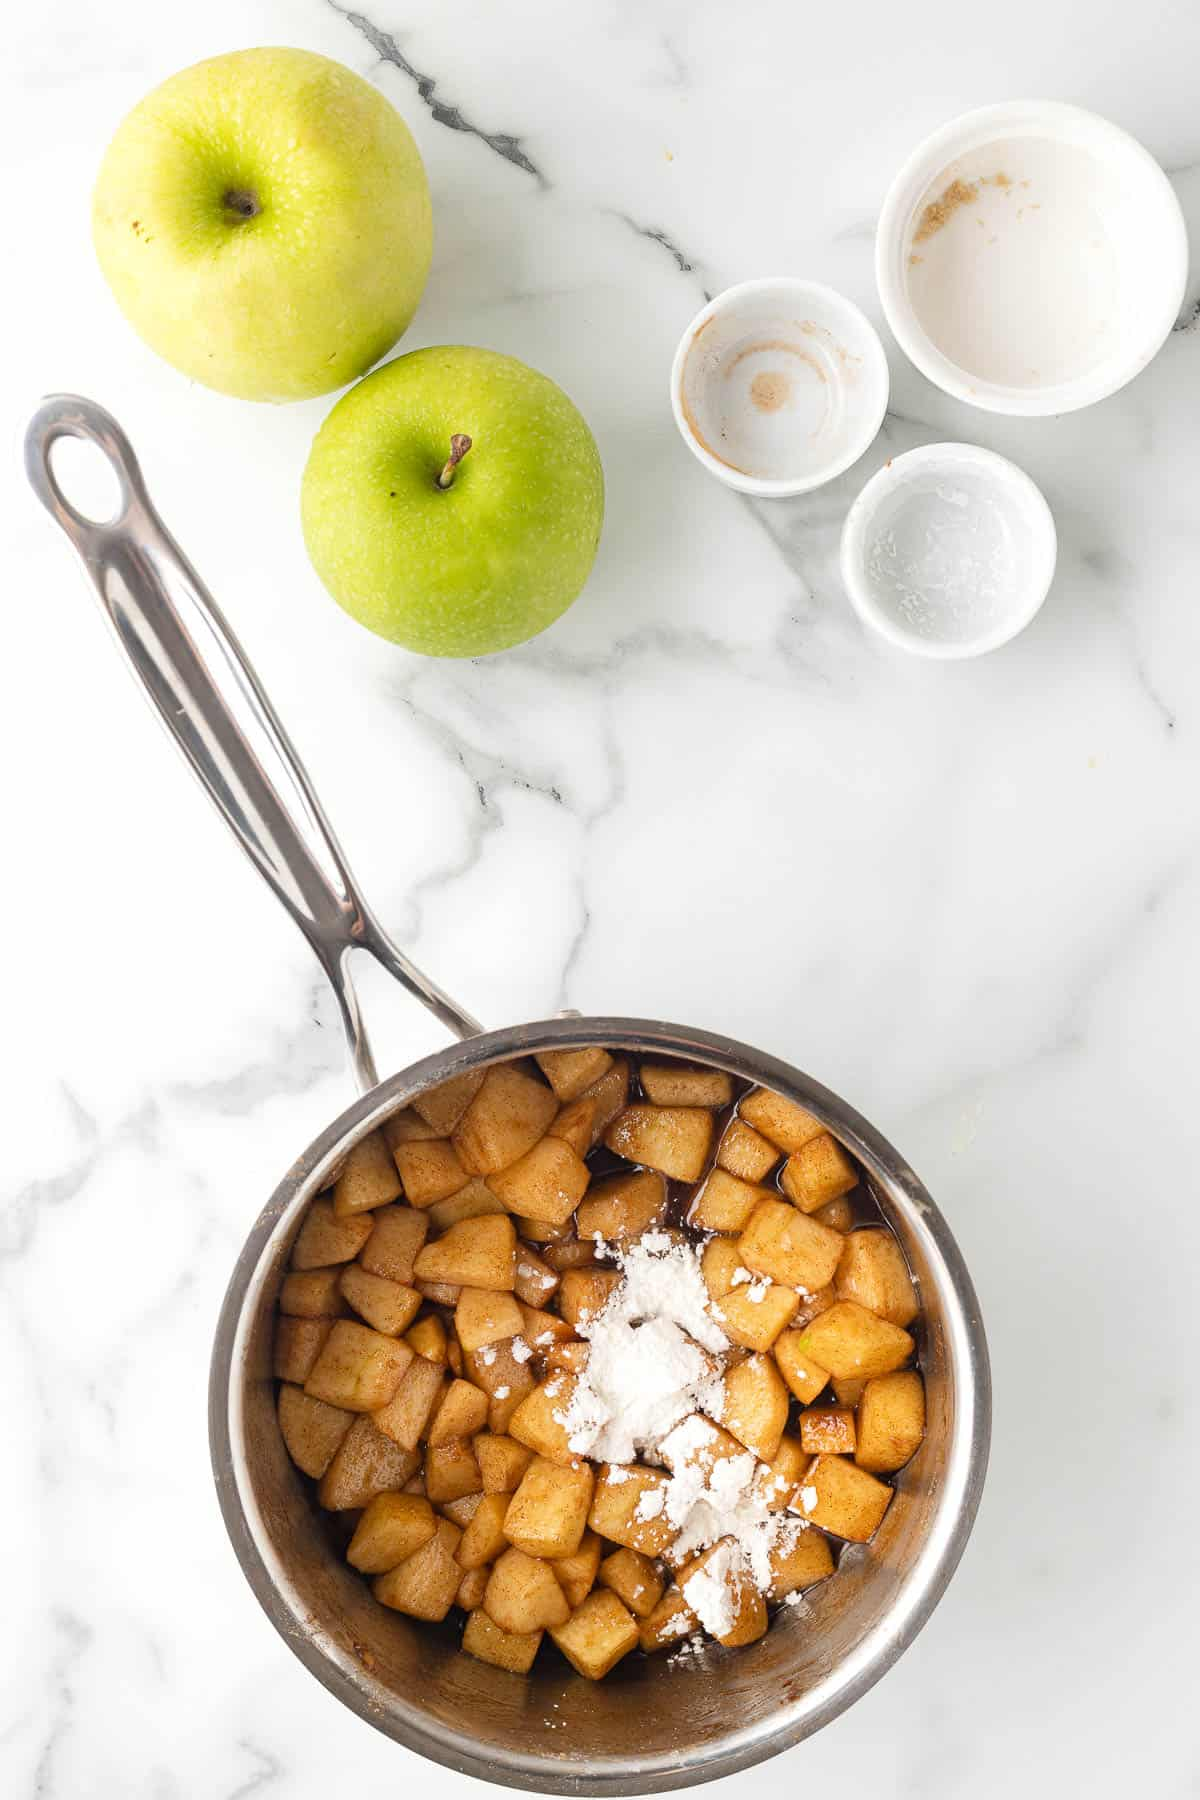 sauce pan with apples, brown sugar, and cinnamon and cornstarch to make apple pie